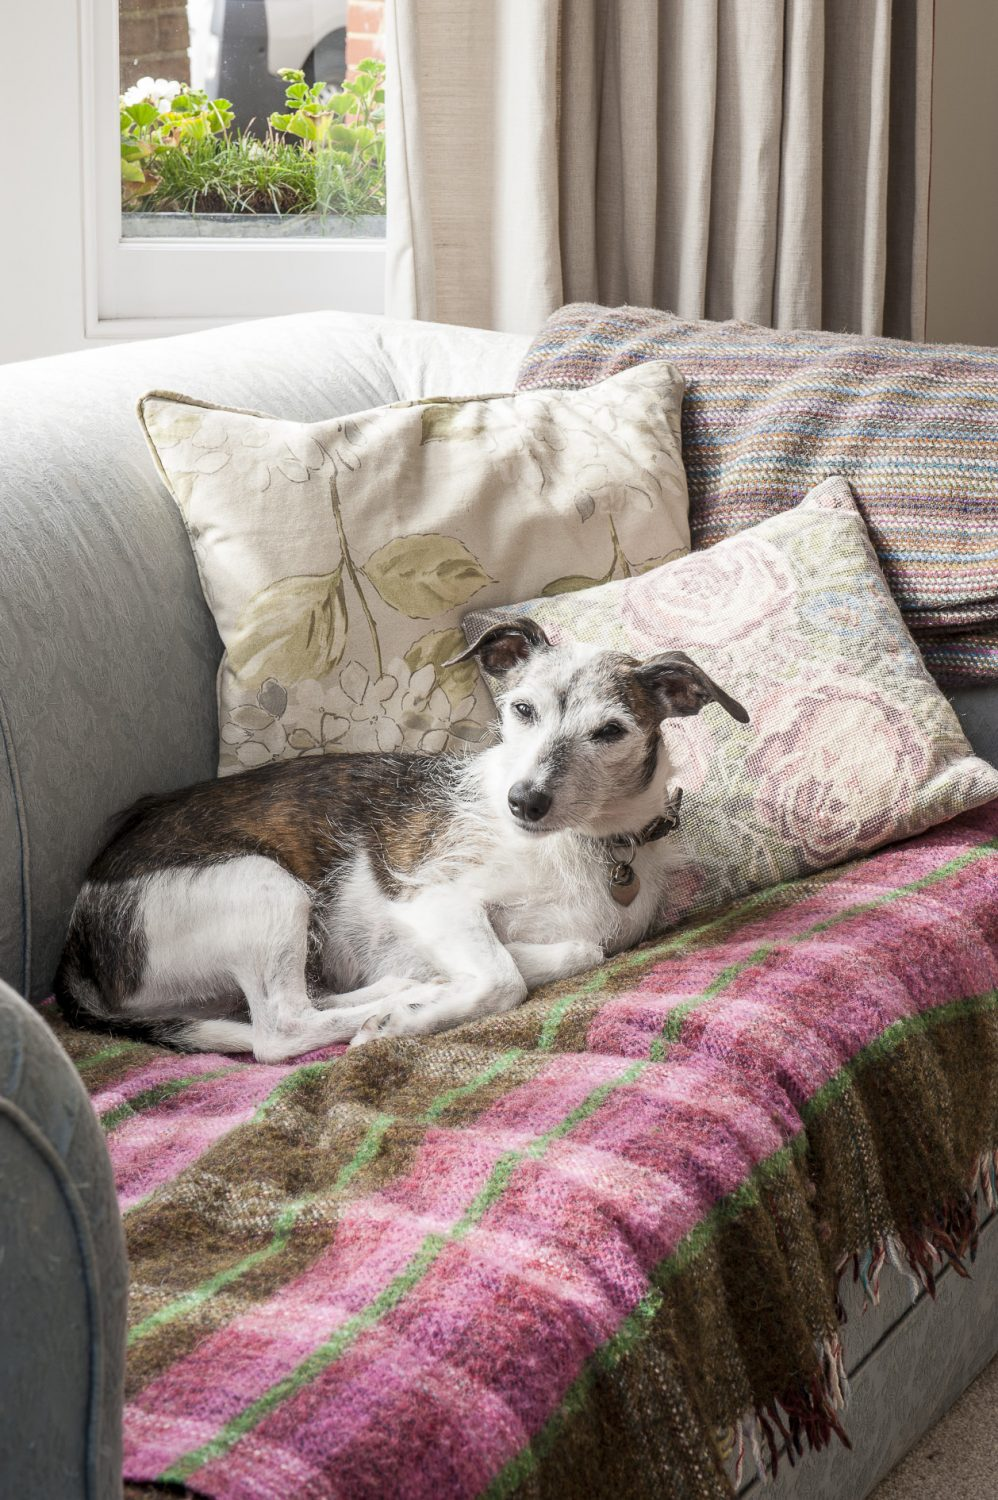 Mr Dogsby relaxes on one of the sofas